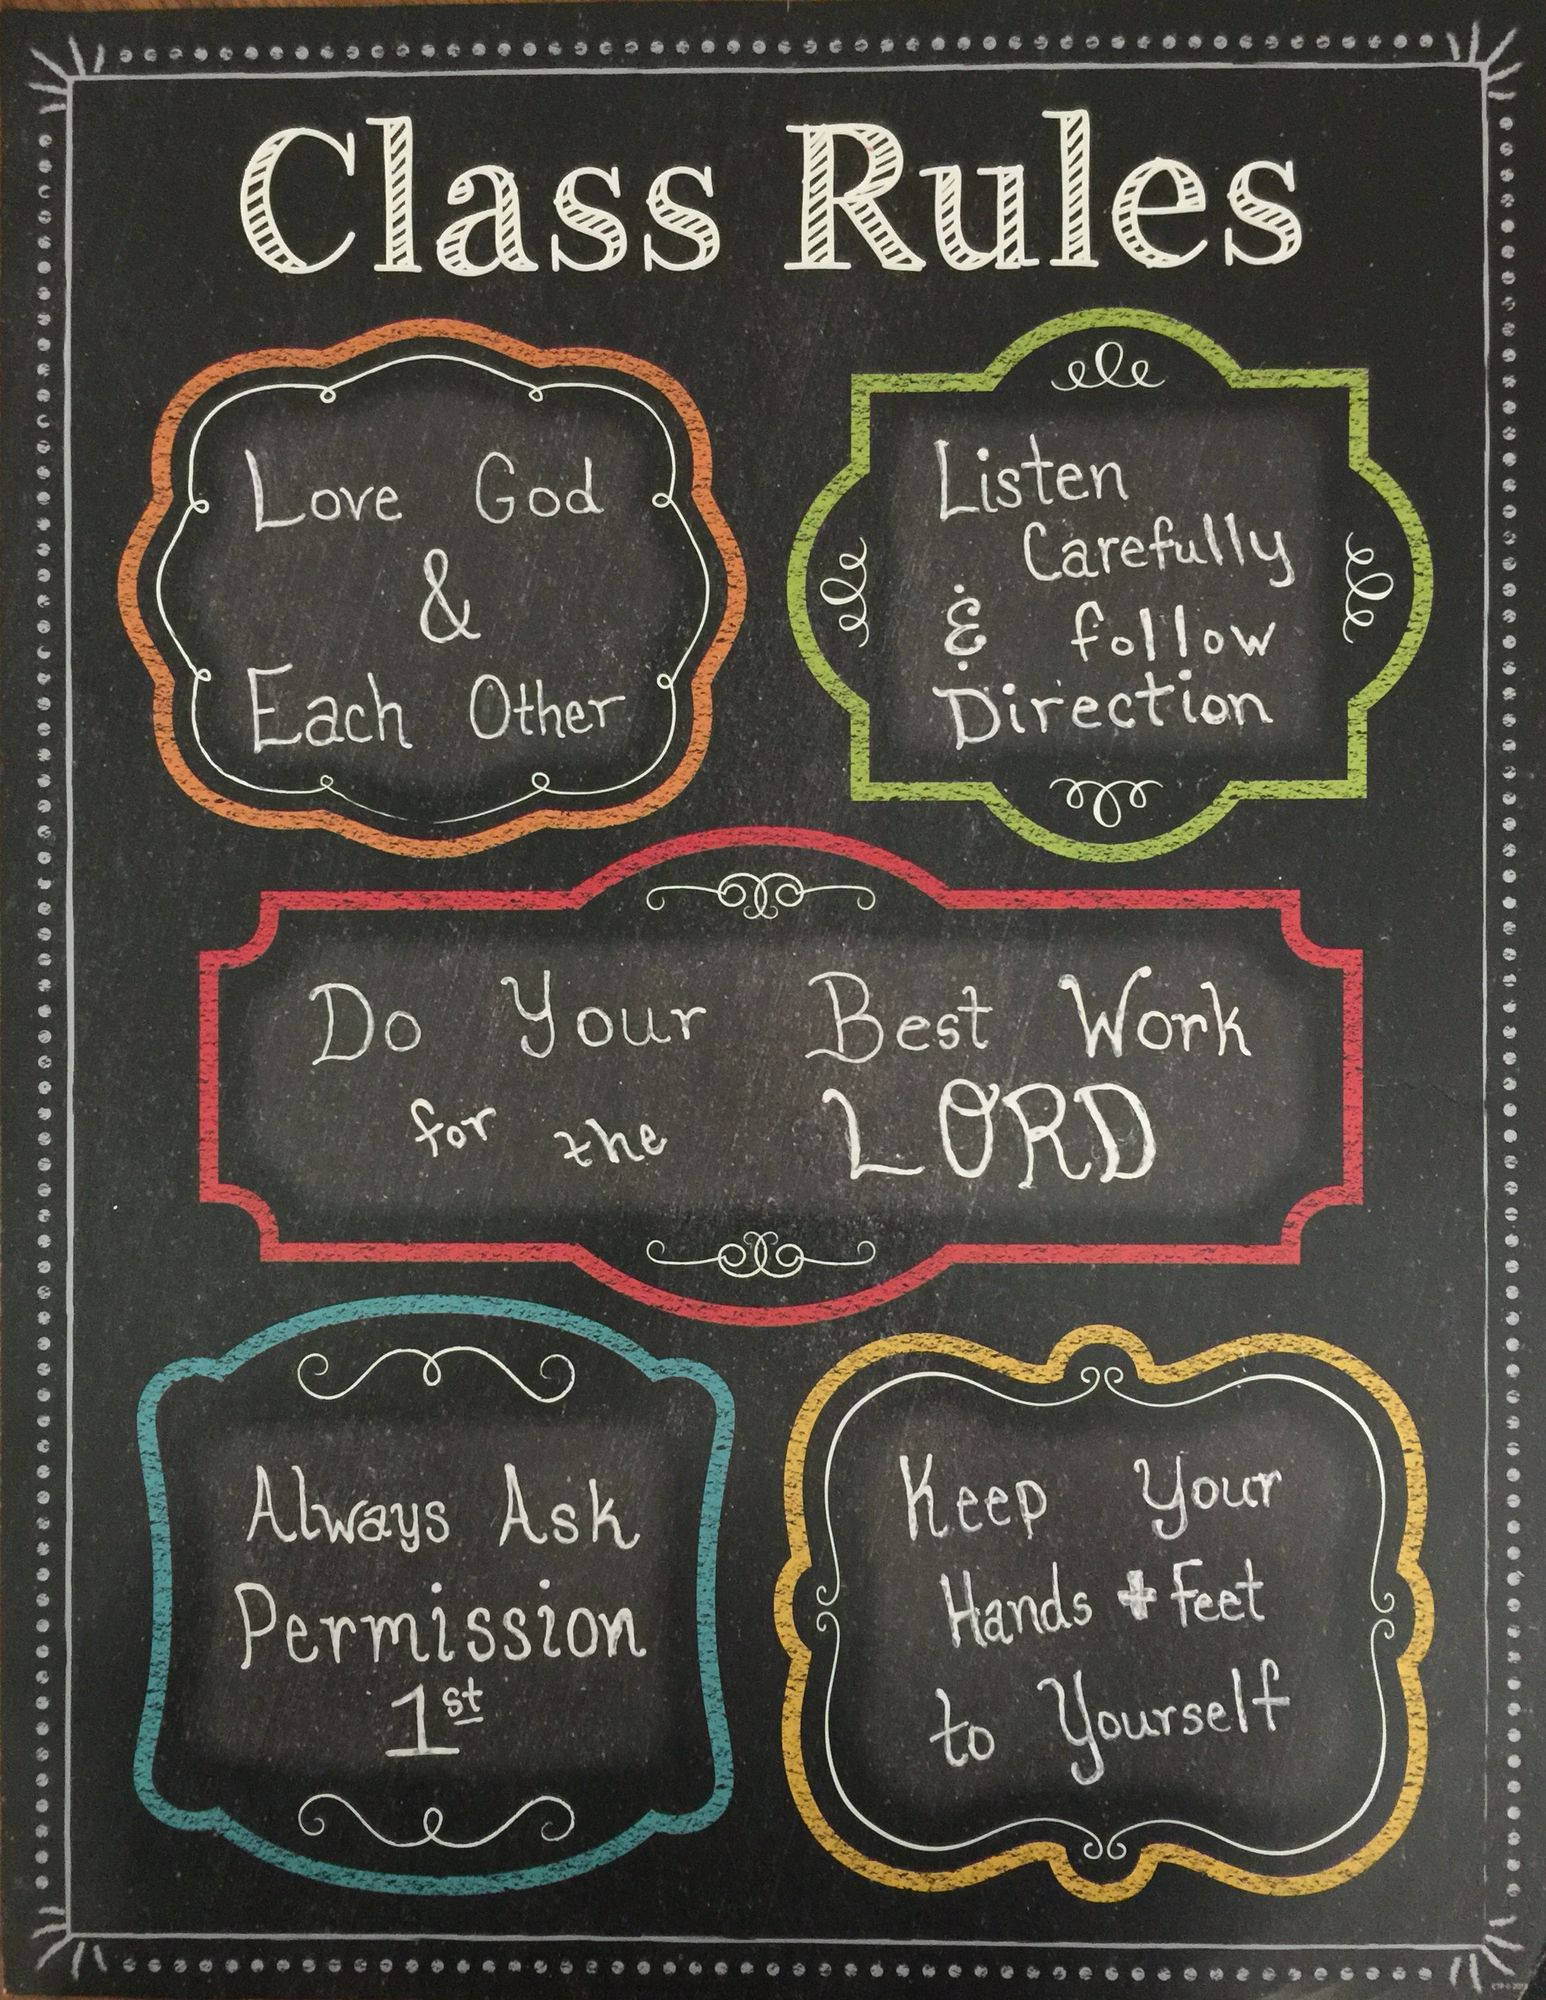 Childrens Church Clrules Lighthouse Ministries Childrens Church And Youth Faith Ministry Youth